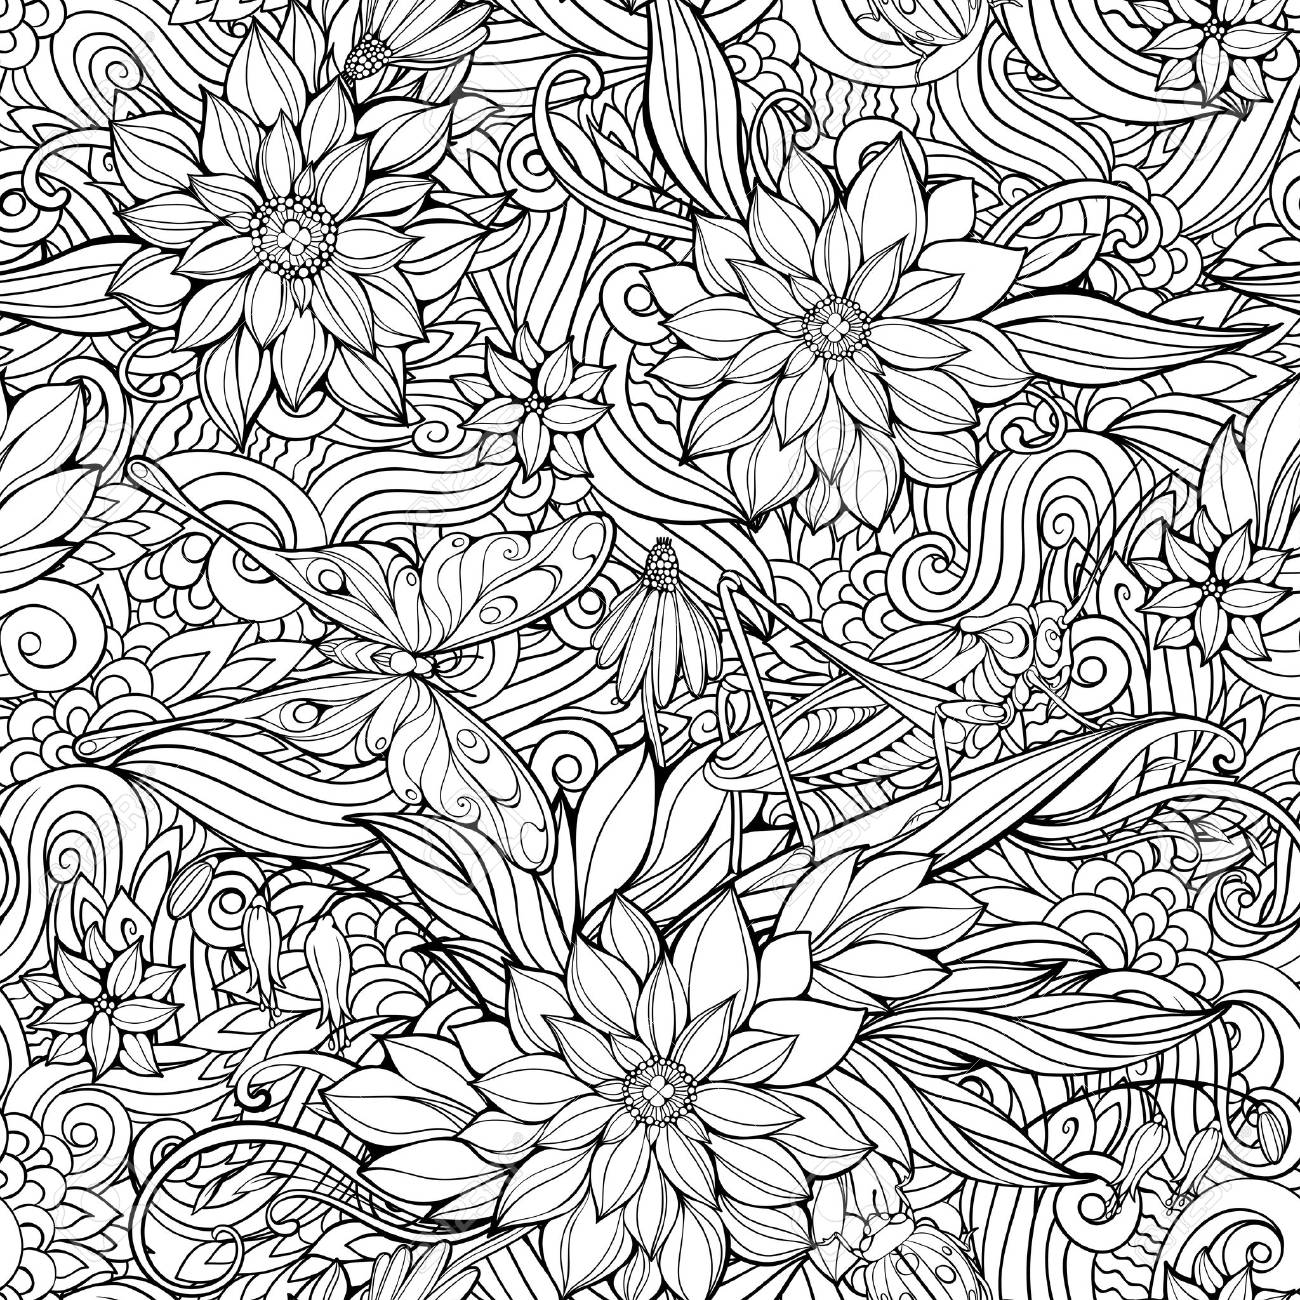 coloring page with seamless pattern of flowers butterflies and